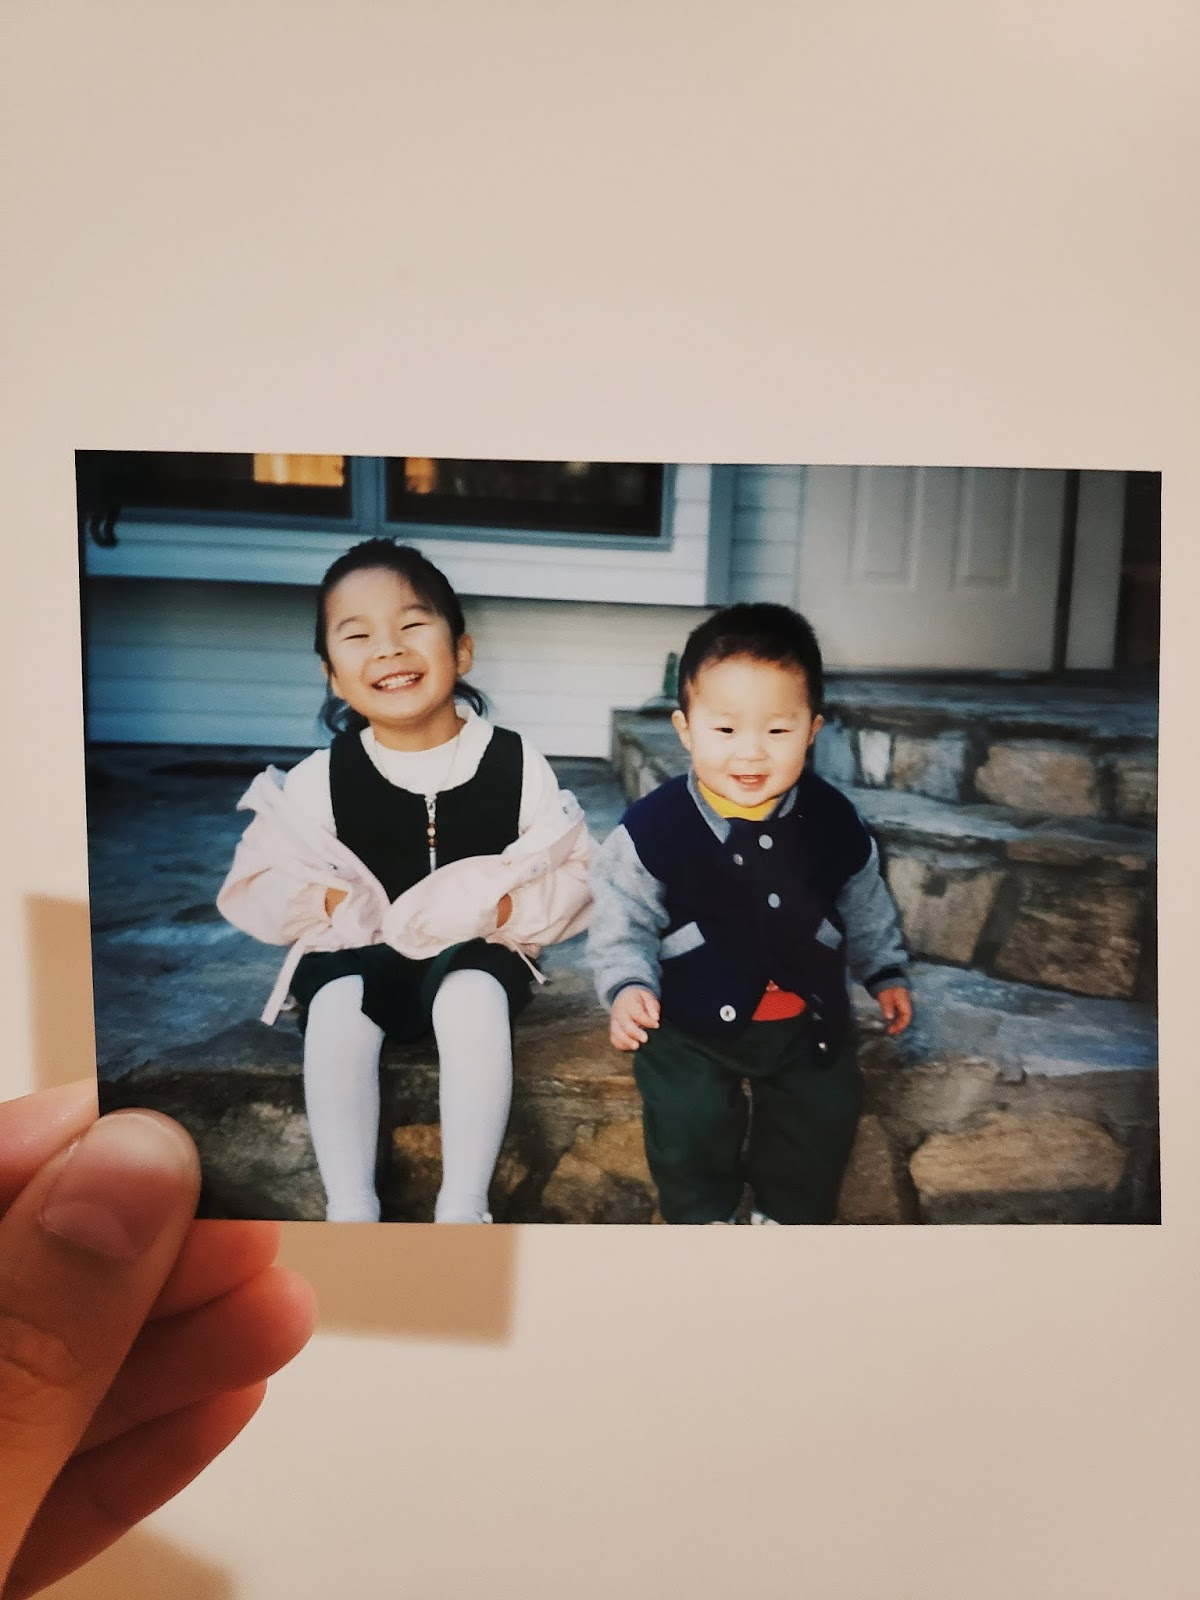 Growing up Asian in America - The cultural Limbo | Asian-American